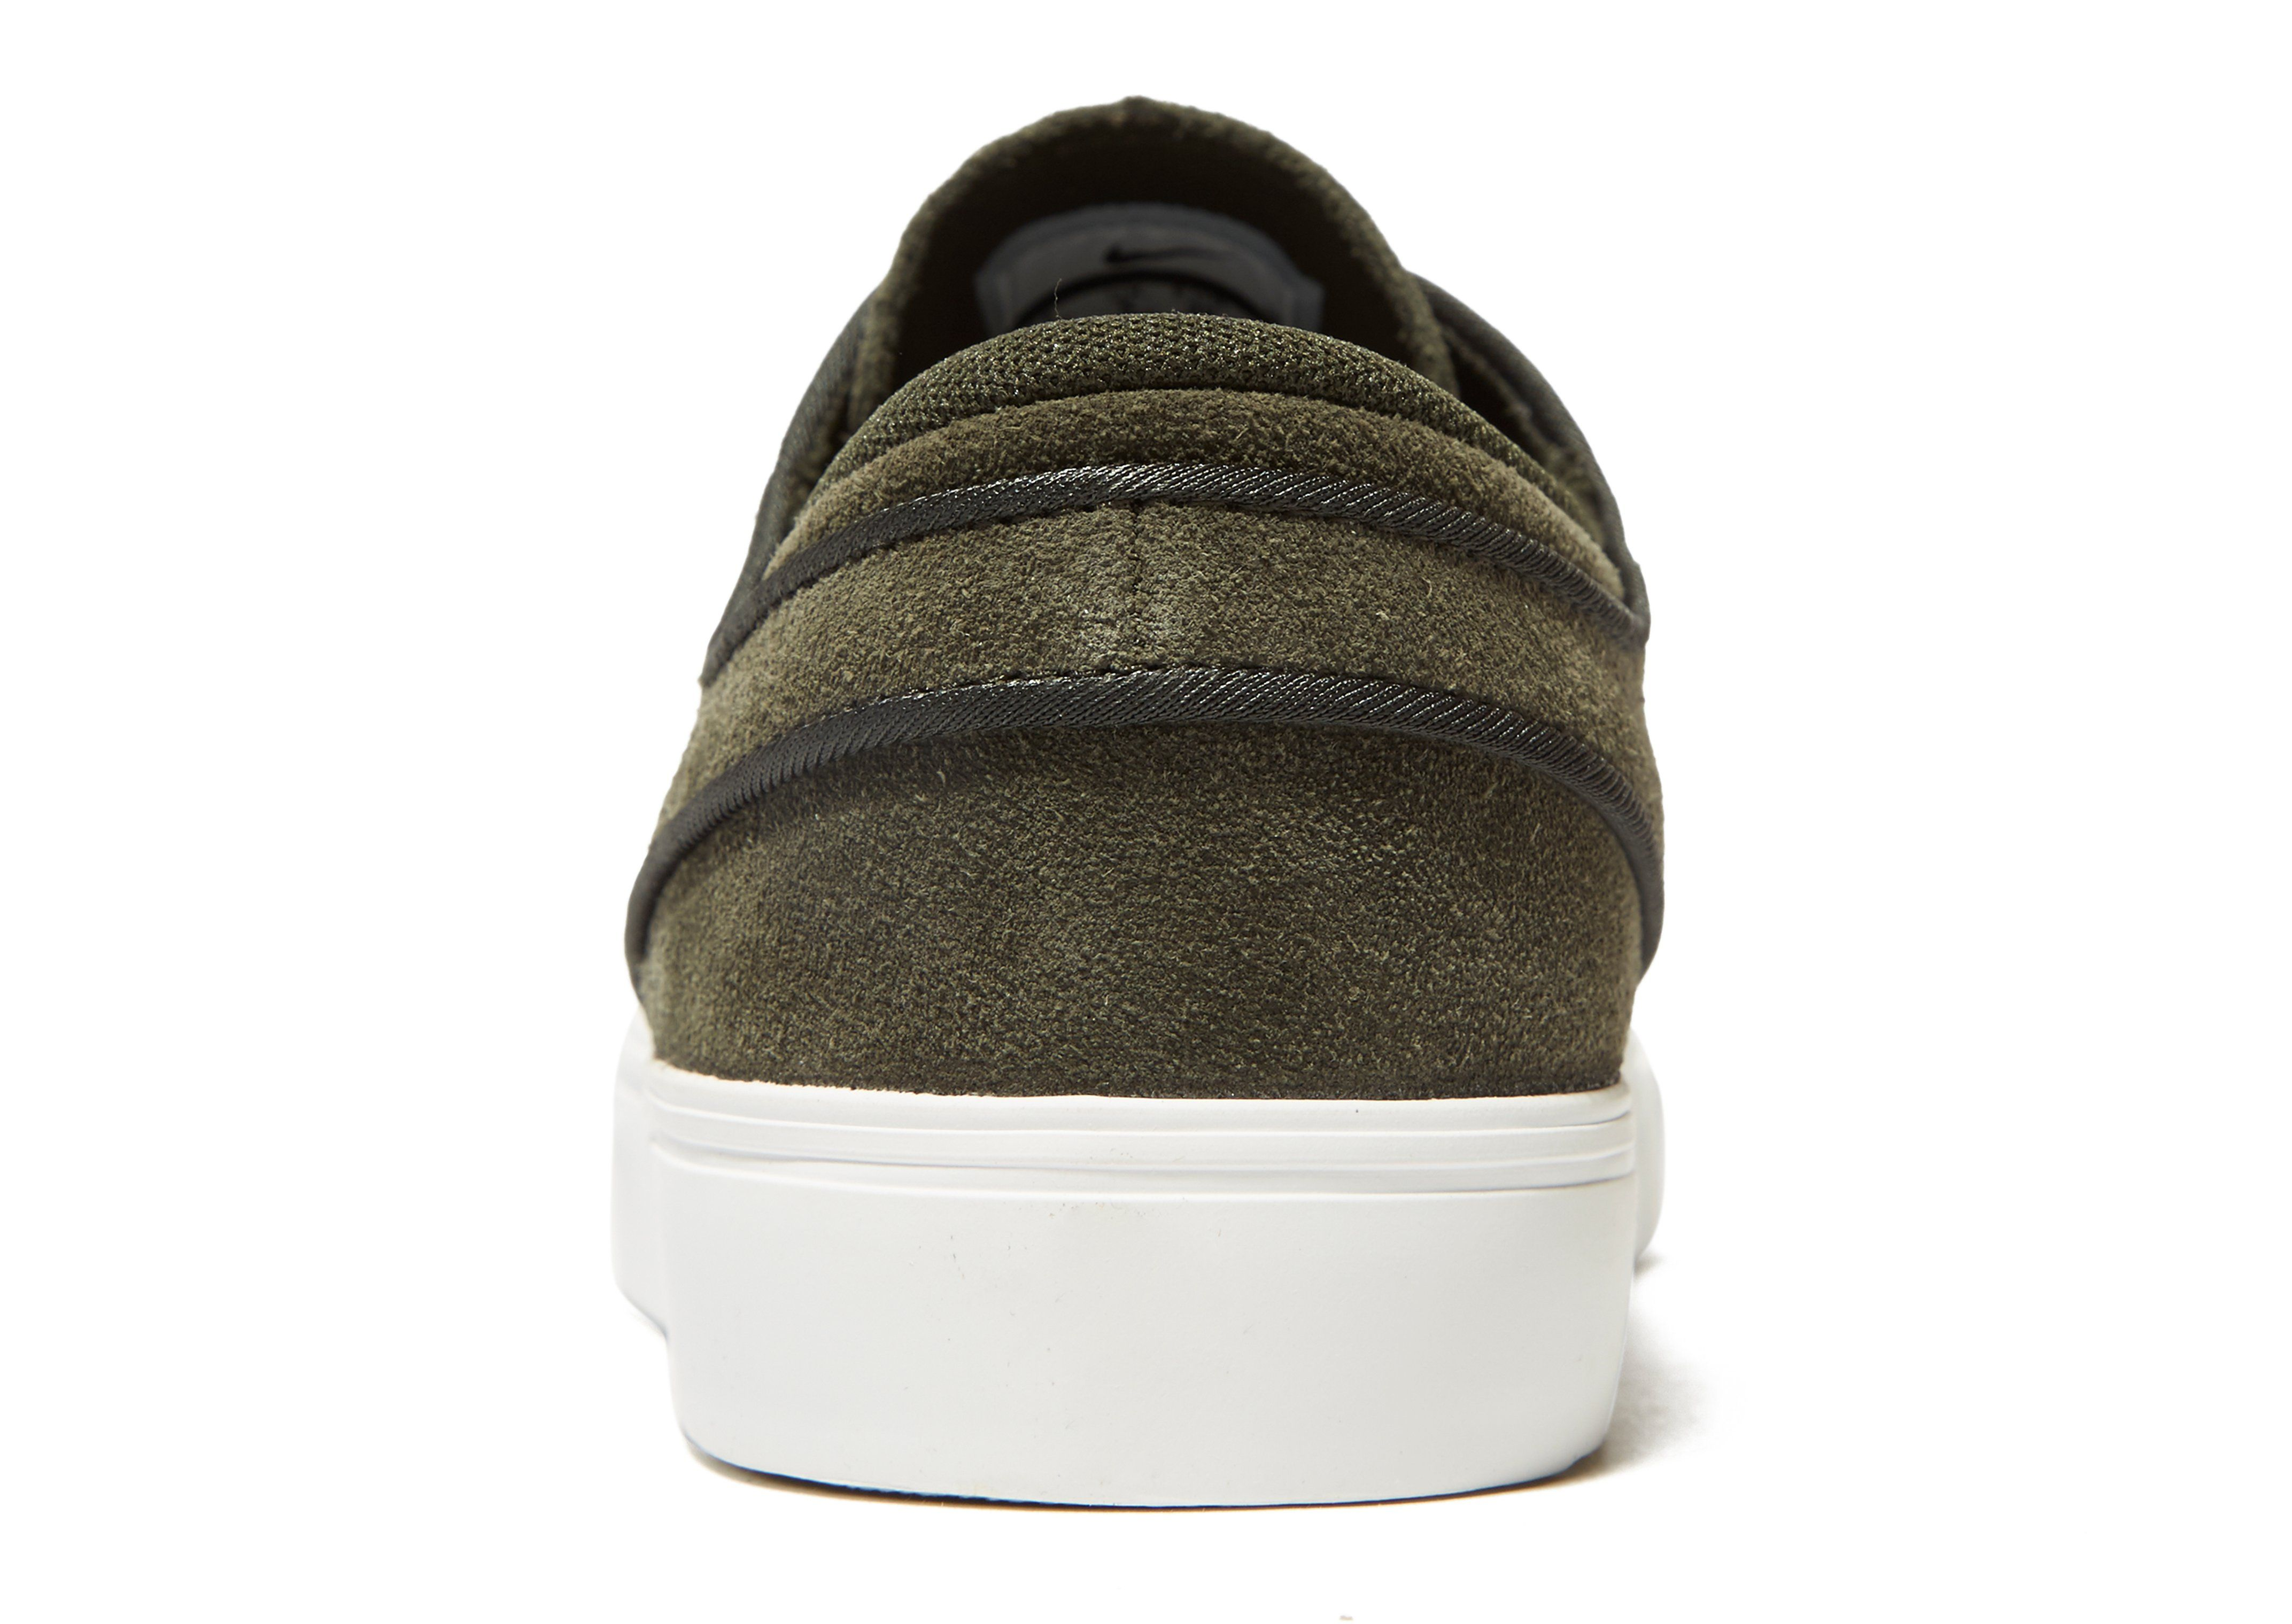 Nike SB Janoski Junior